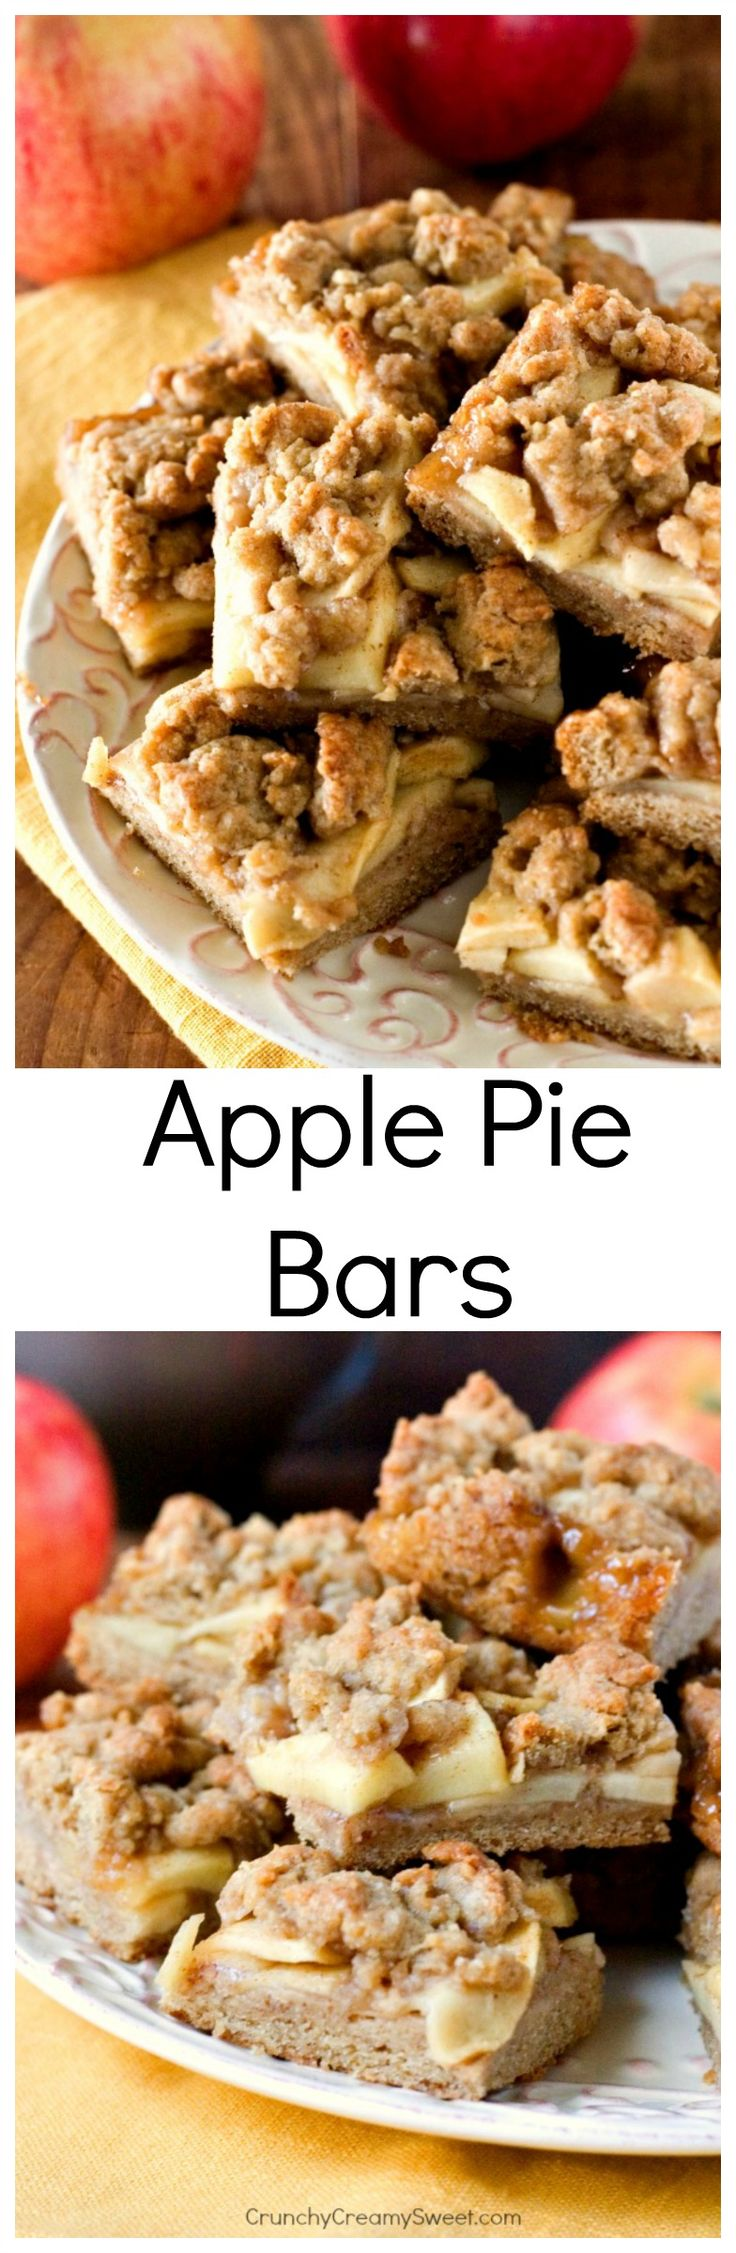 about Easy apple desserts on Pinterest | Desserts with apples, Apple ...